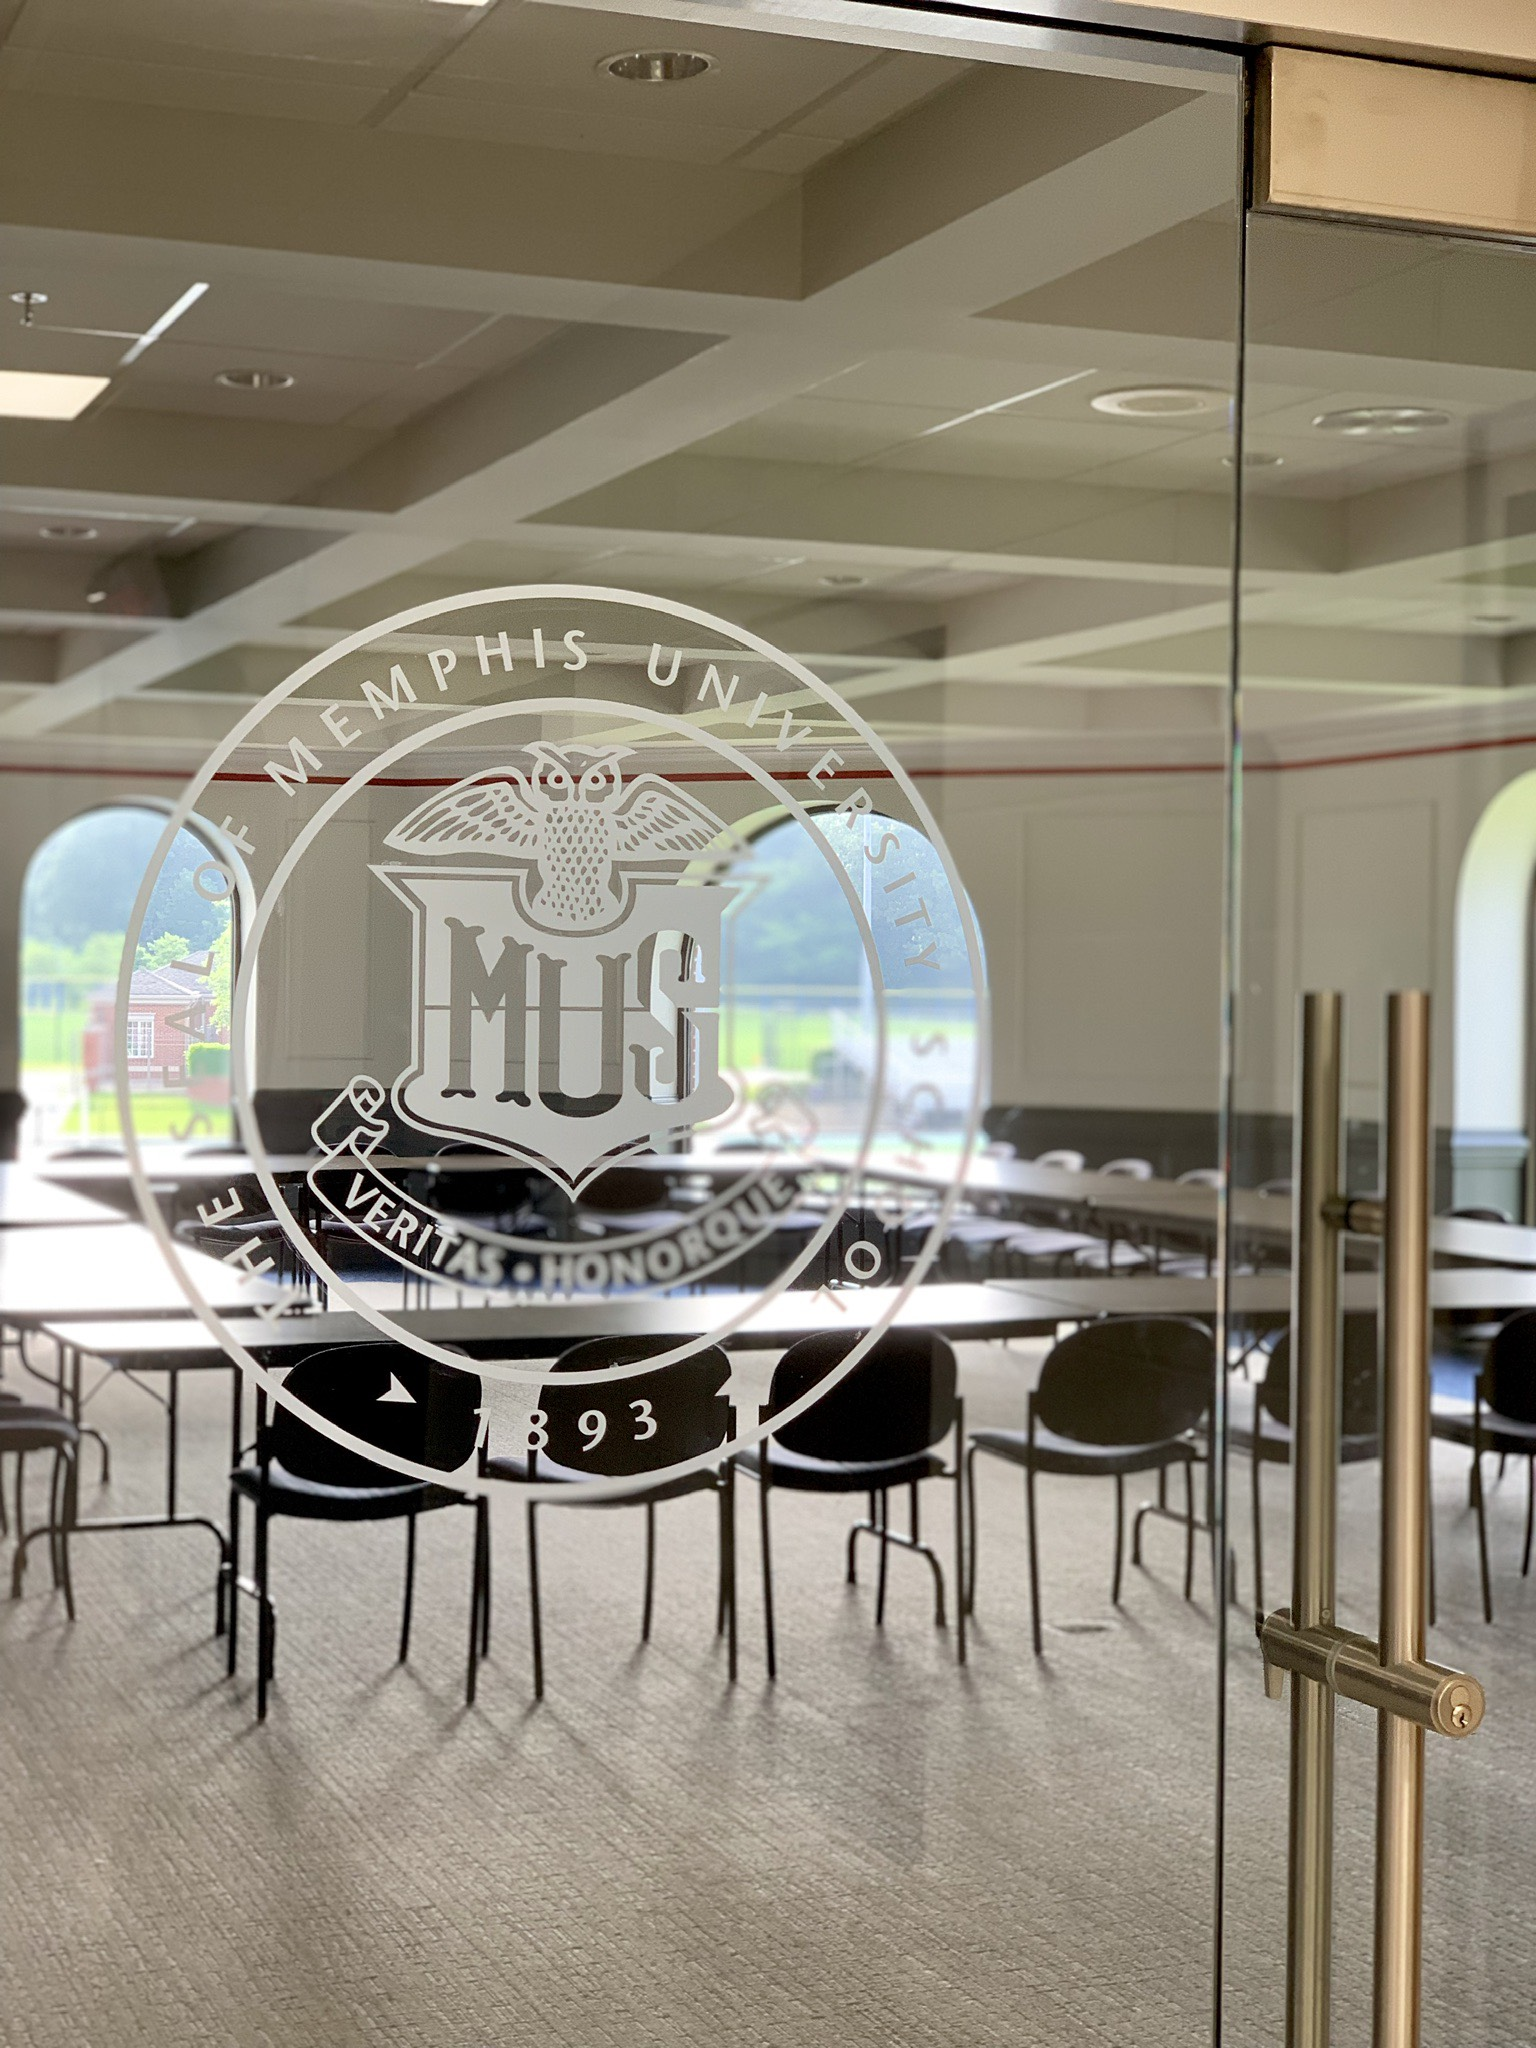 Memphis-University-School_Etched-Glass-Logo_LSIGraphics_Memphis-TN-1 ..